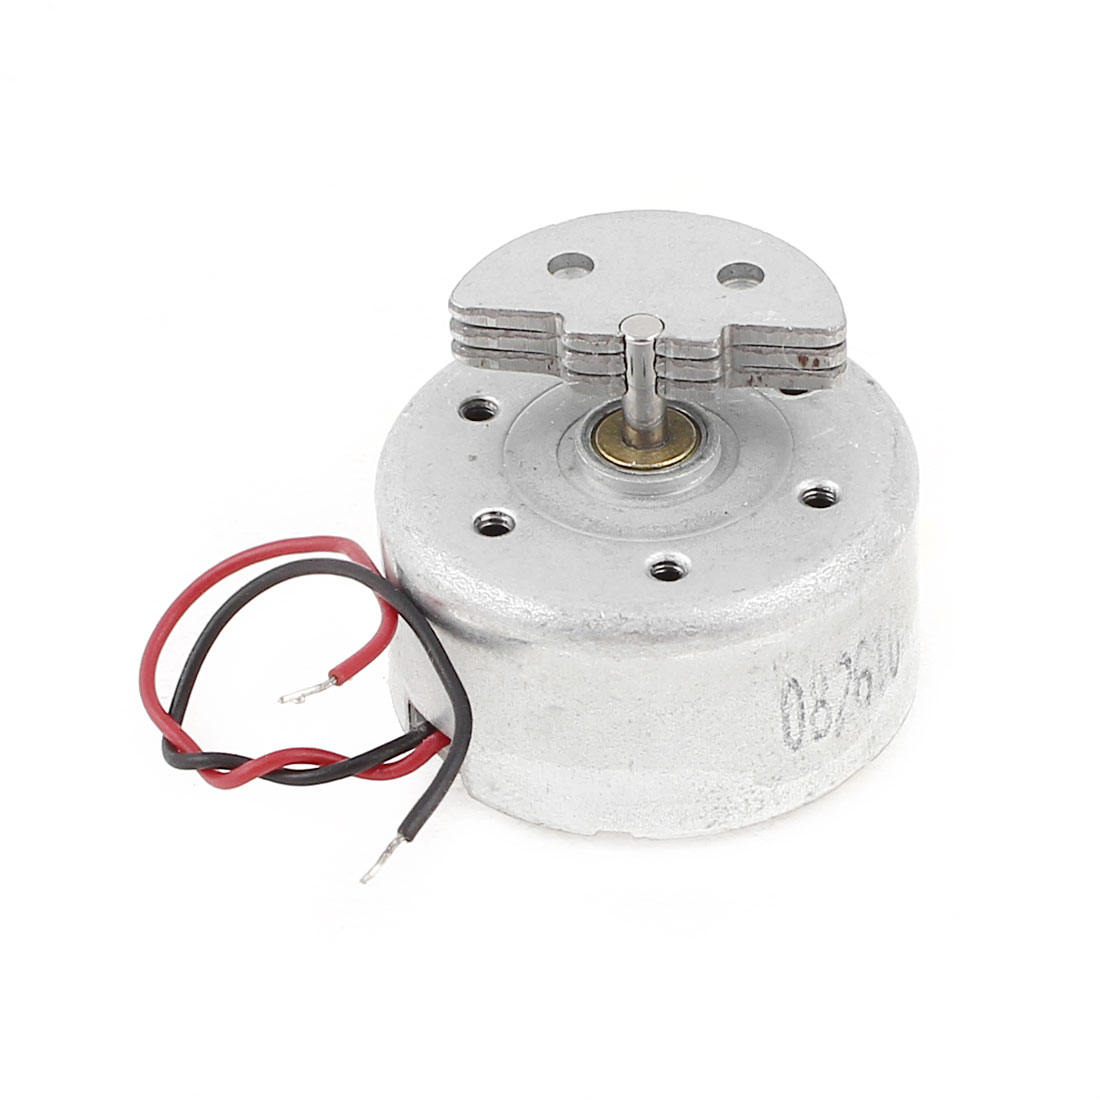 1700RPM Load Speed DC 2V Micro Vibration Motor RF300 for RC DIY